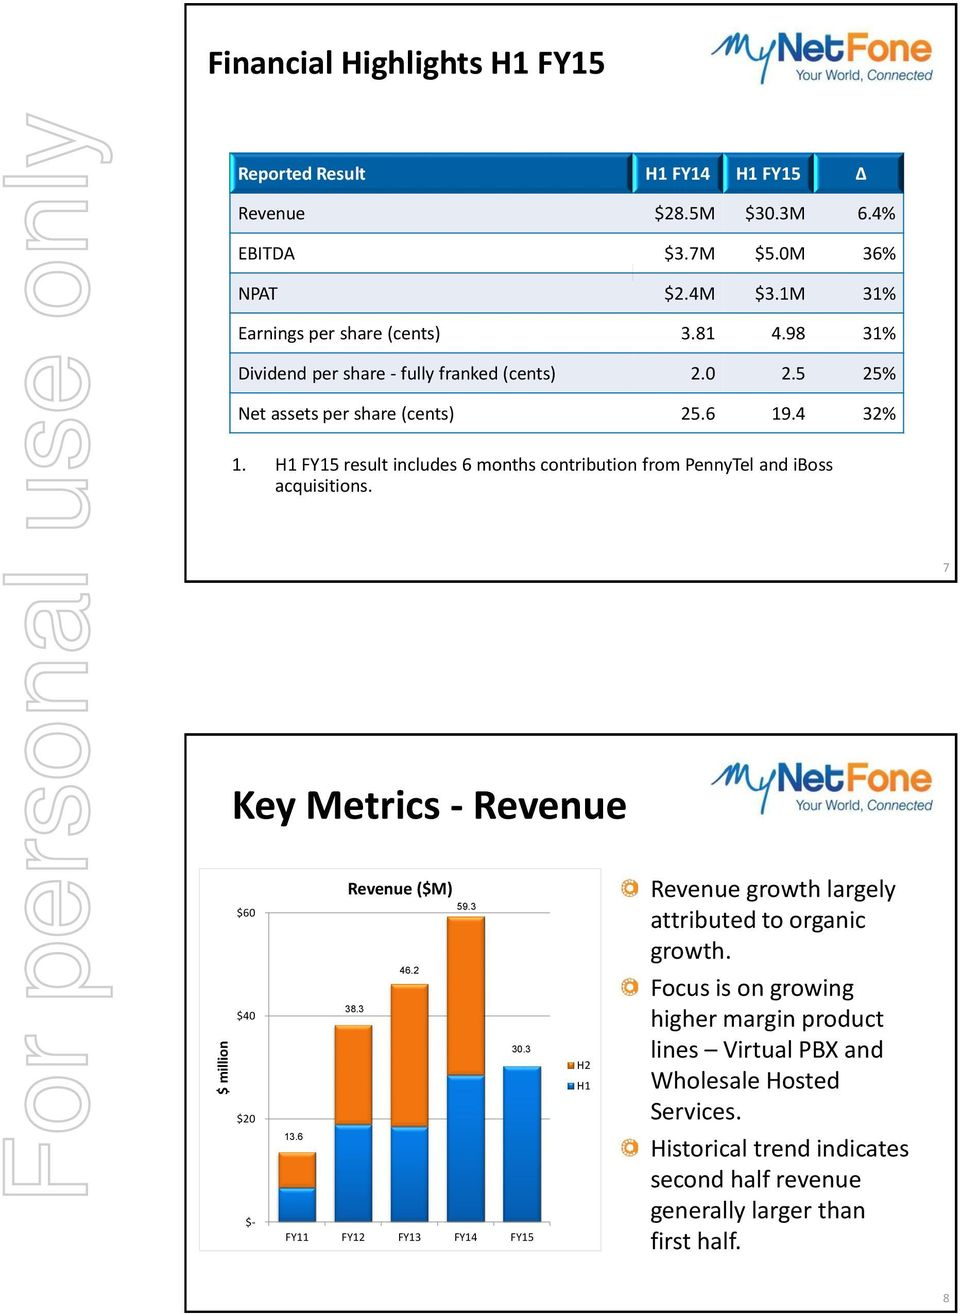 H1 FY15 result includes 6 months contribution from PennyTel and iboss acquisitions. 7 Key Metrics - Revenue $60 $40 $20 $- Revenue ($M) 59.3 46.2 38.3 30.3 13.